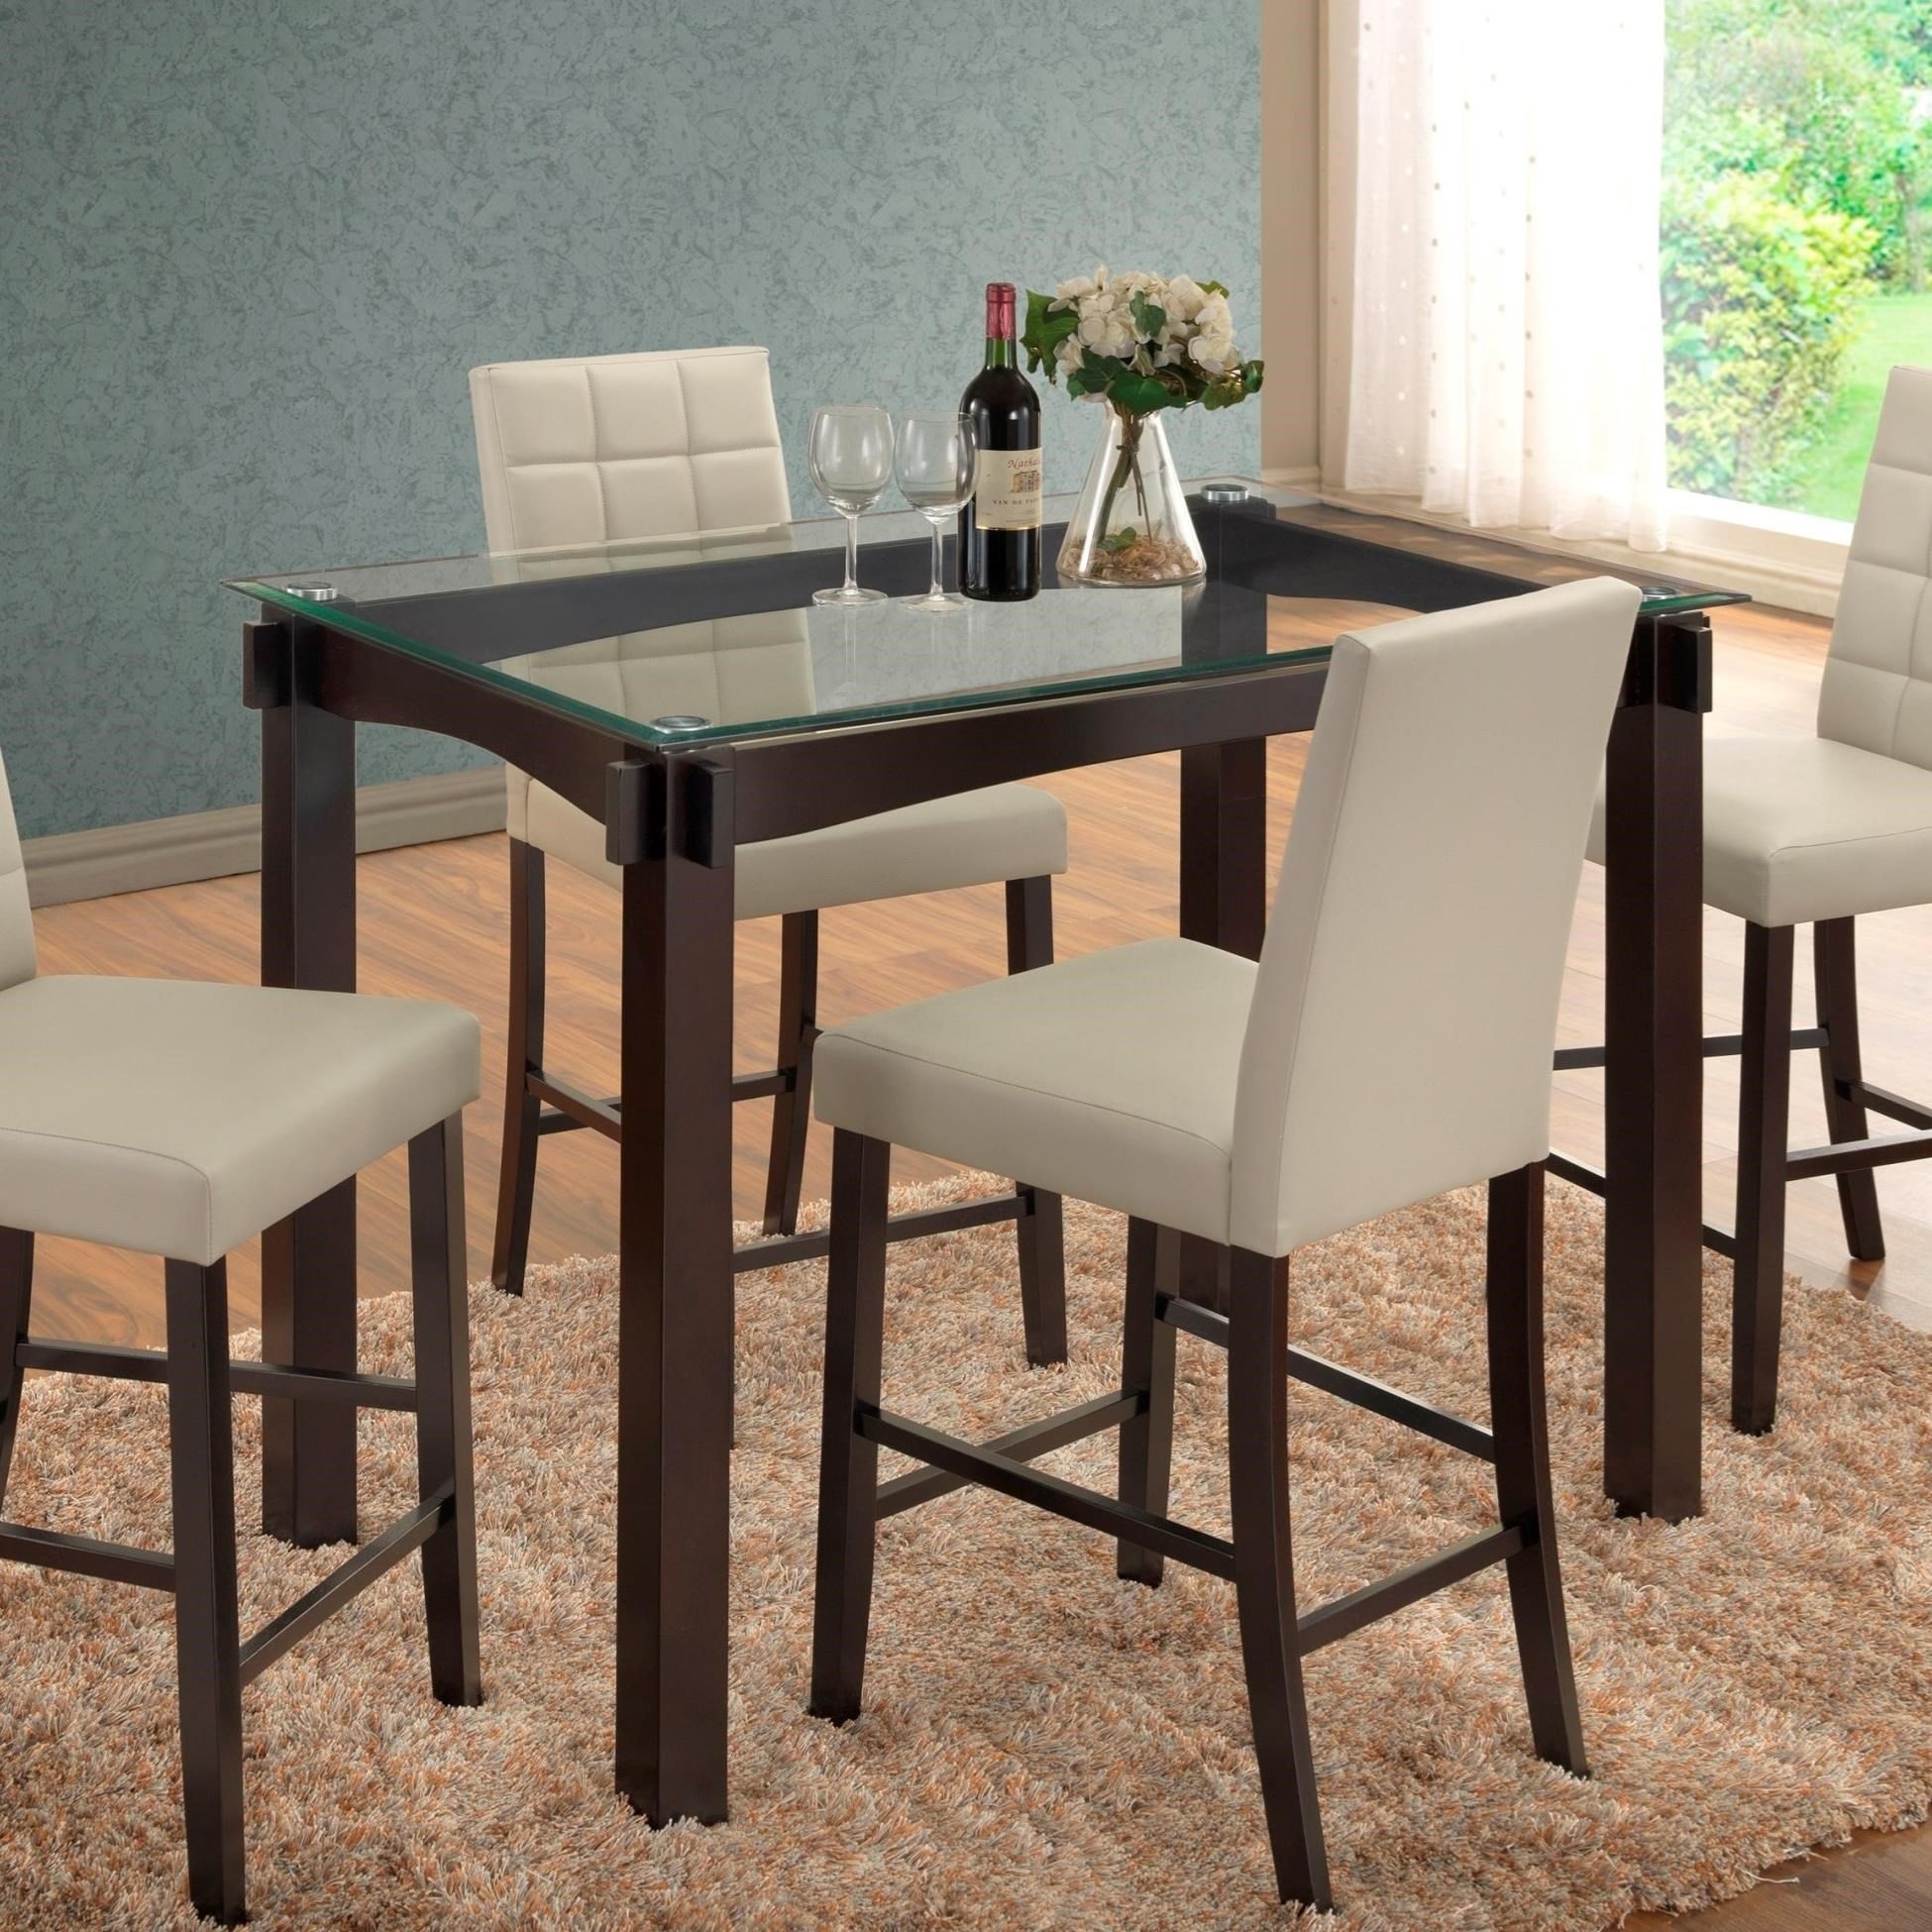 Cm Camelia 7 Piece Espresso Table Upholstered Chair Set